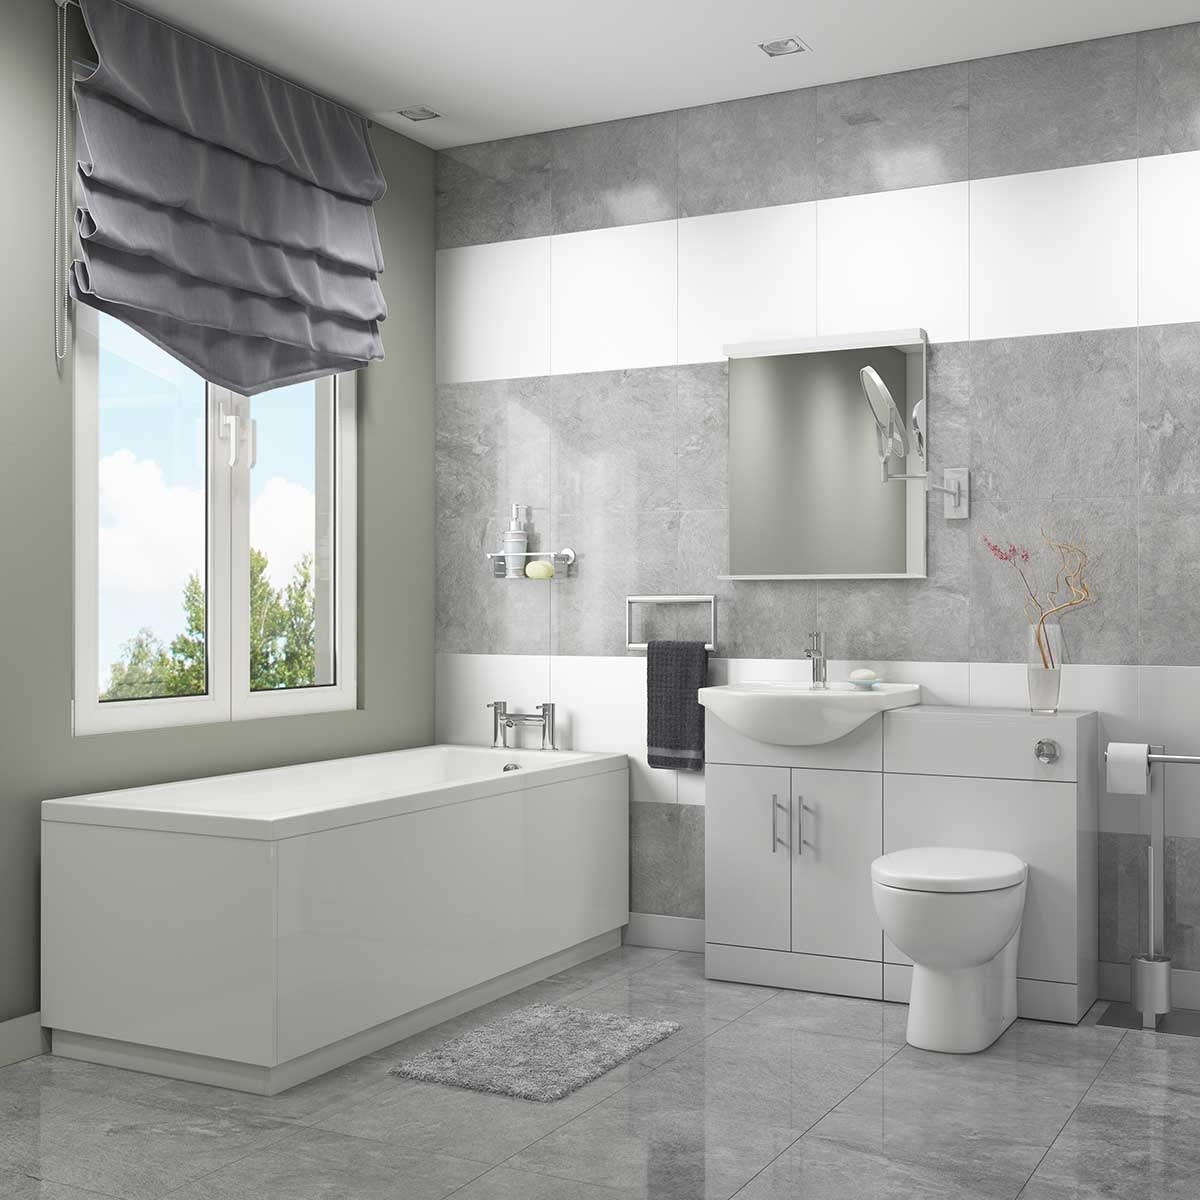 Complete Bathroom Suite with Vanity Units, Taps and Wastes ...